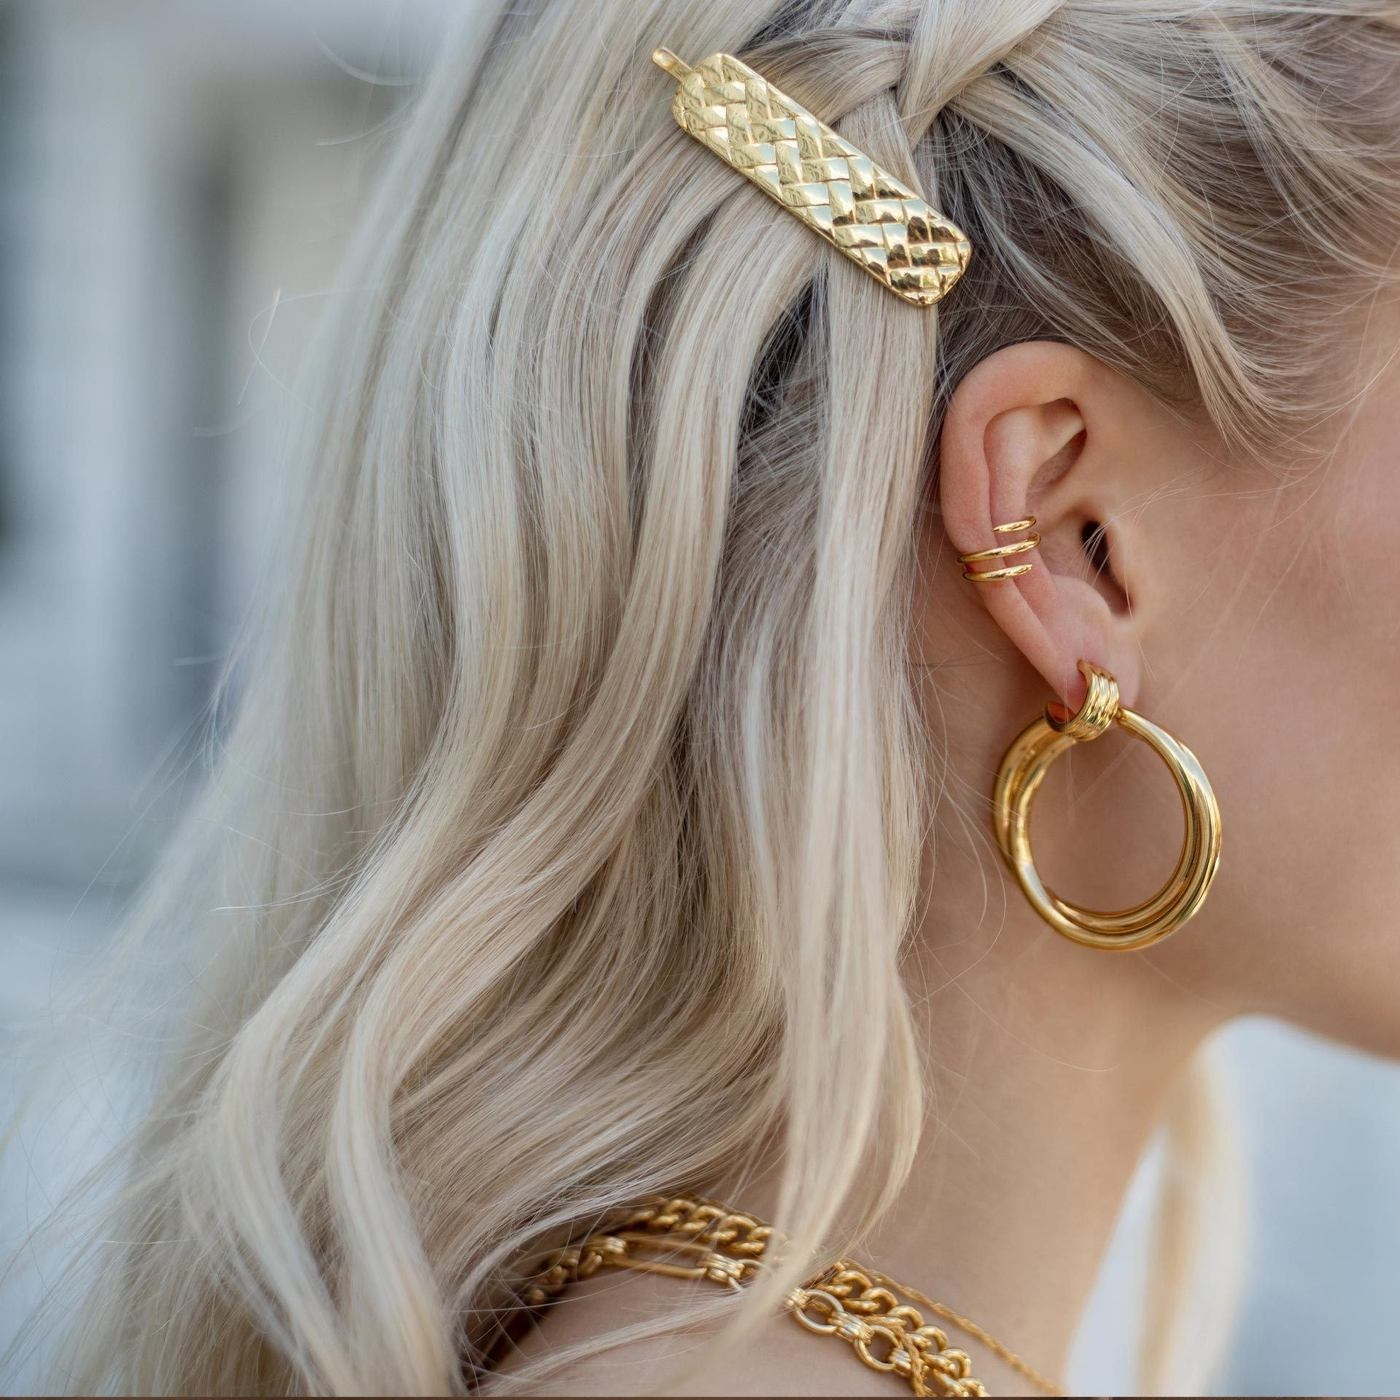 6 Jewellery Trends We're Buying in 2021